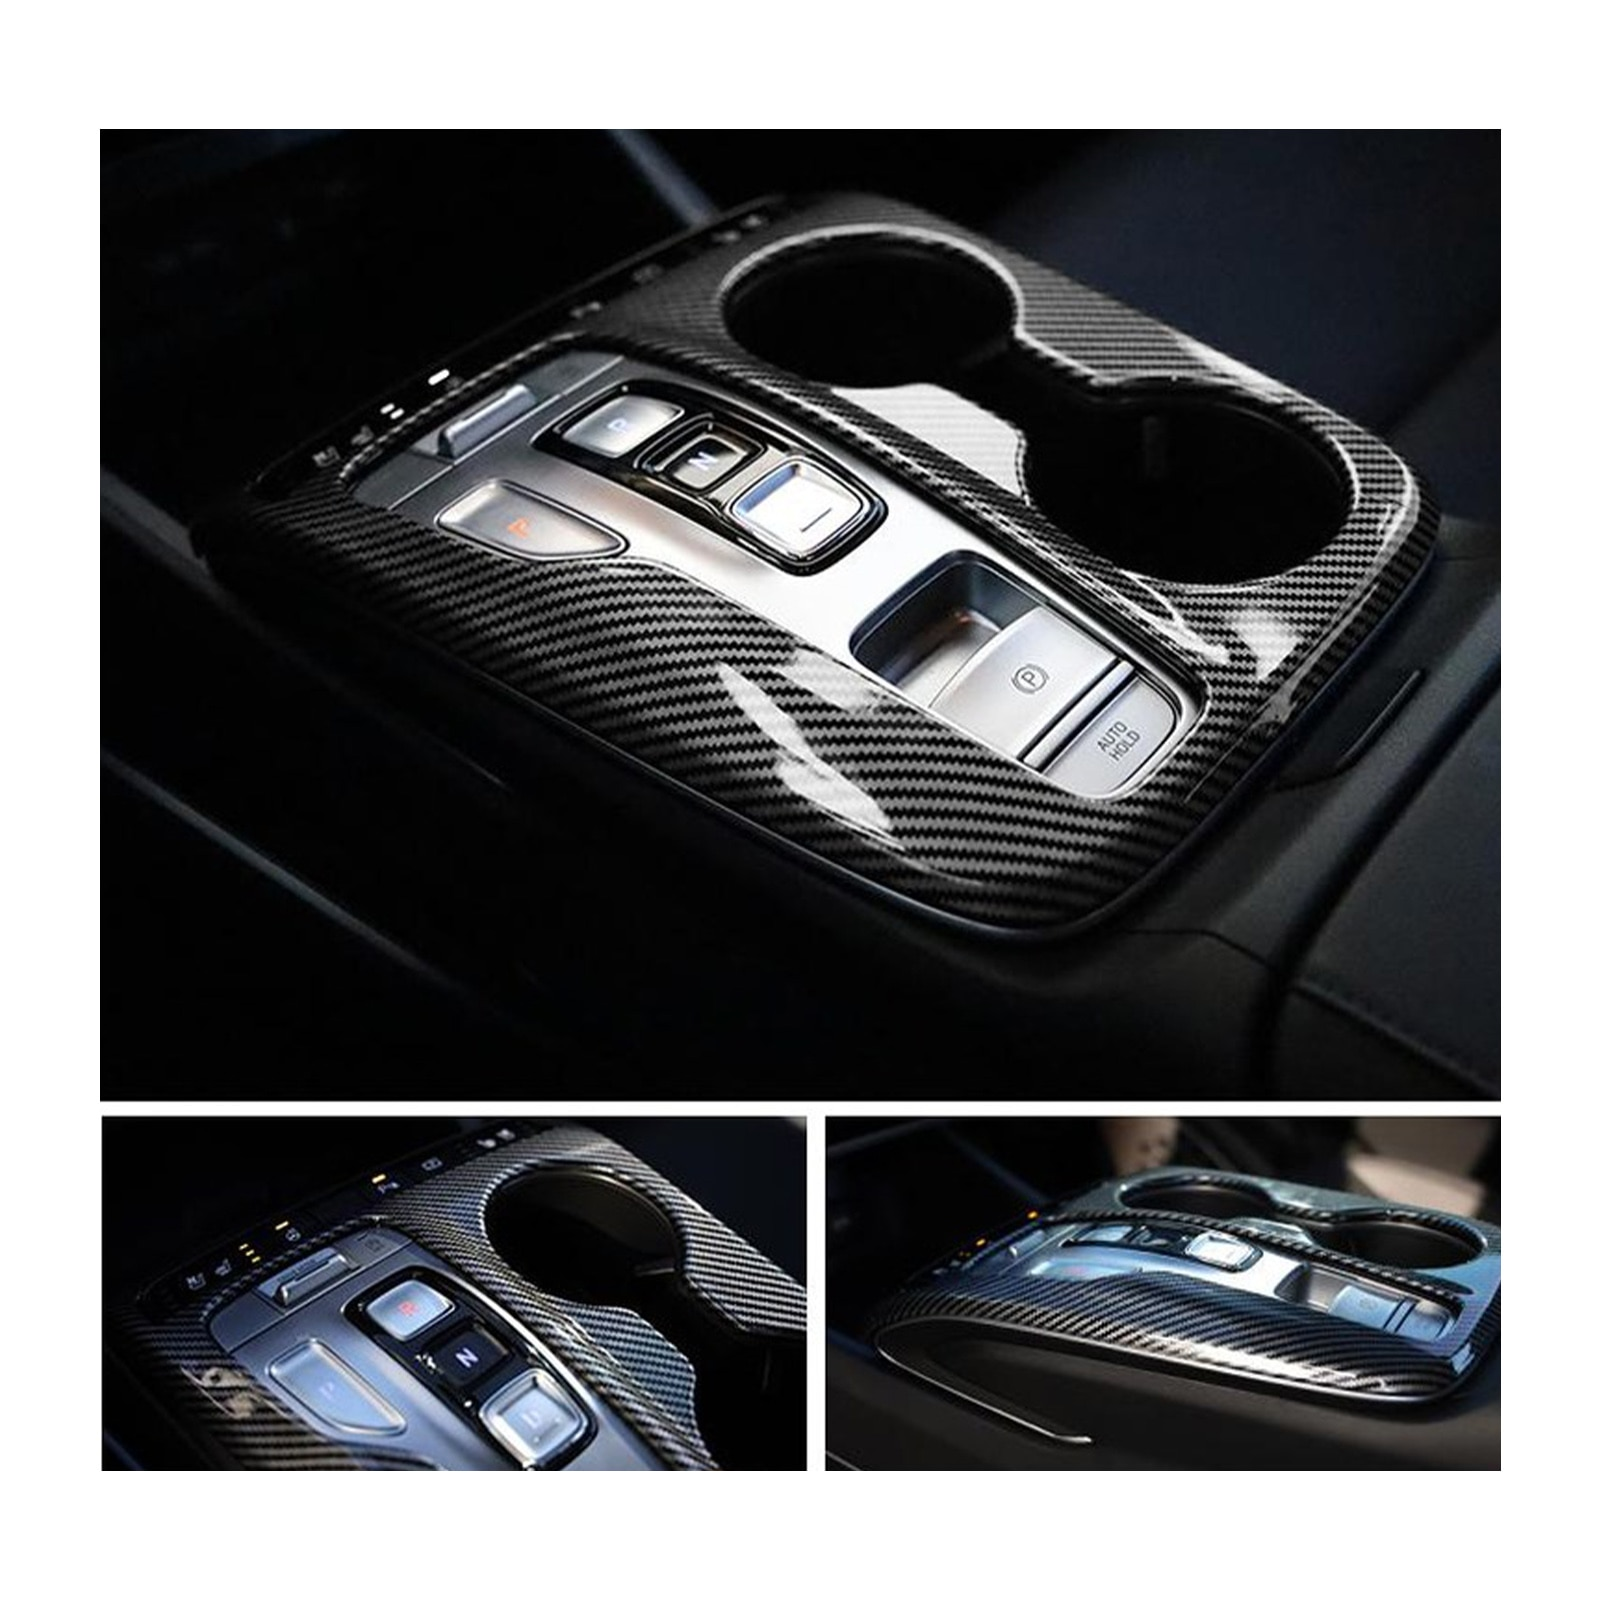 LFOTPP Car Carbon Fiber Panel Cover For Tucson NX4 2021 Central Control Gear Shift Box Auto Interior Styling Accessories 1 Pc enlarge